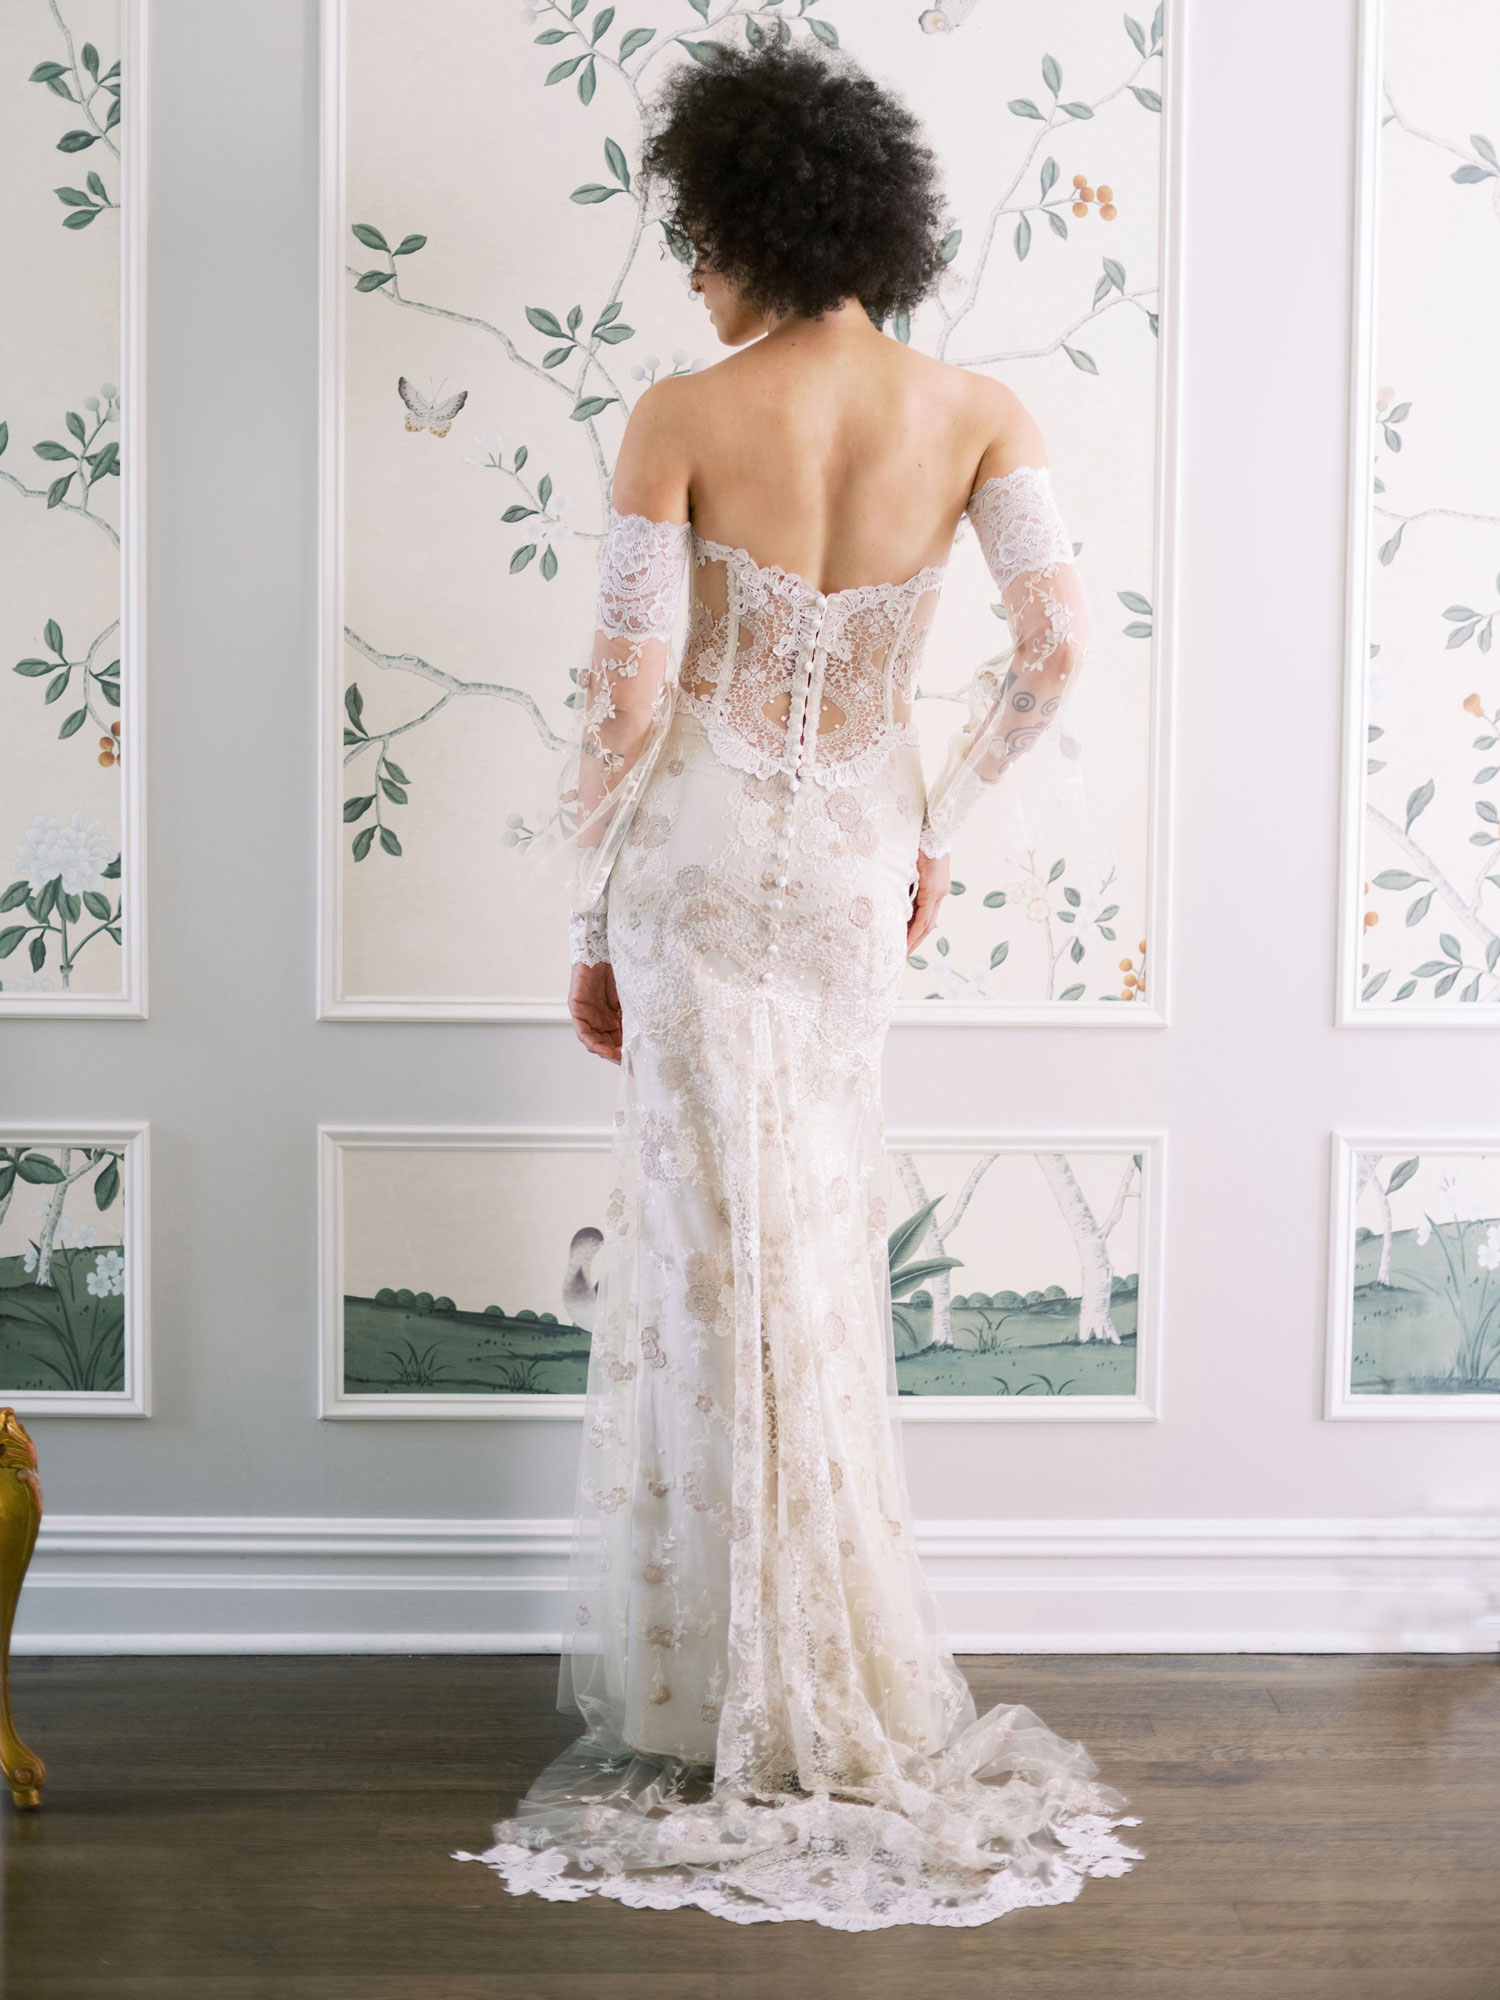 Claire Pettibone Evolution 2020 bridal collection Lyra back of wedding dress